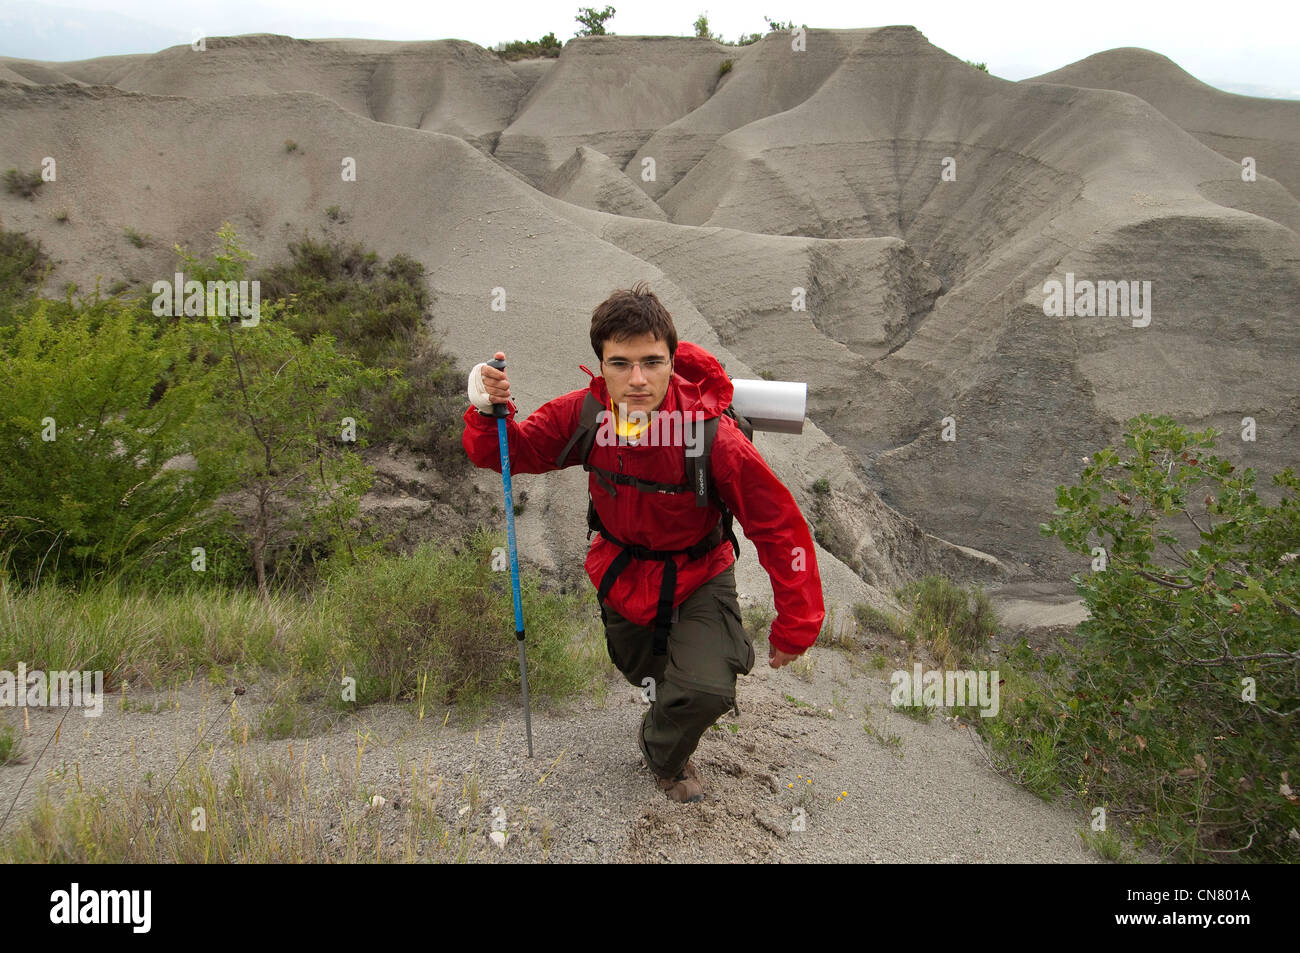 Spain, Aragon, Artieda, Adrian, Catalan pilgrim of Barcelona, crossing the Yesa badlands - Stock Image